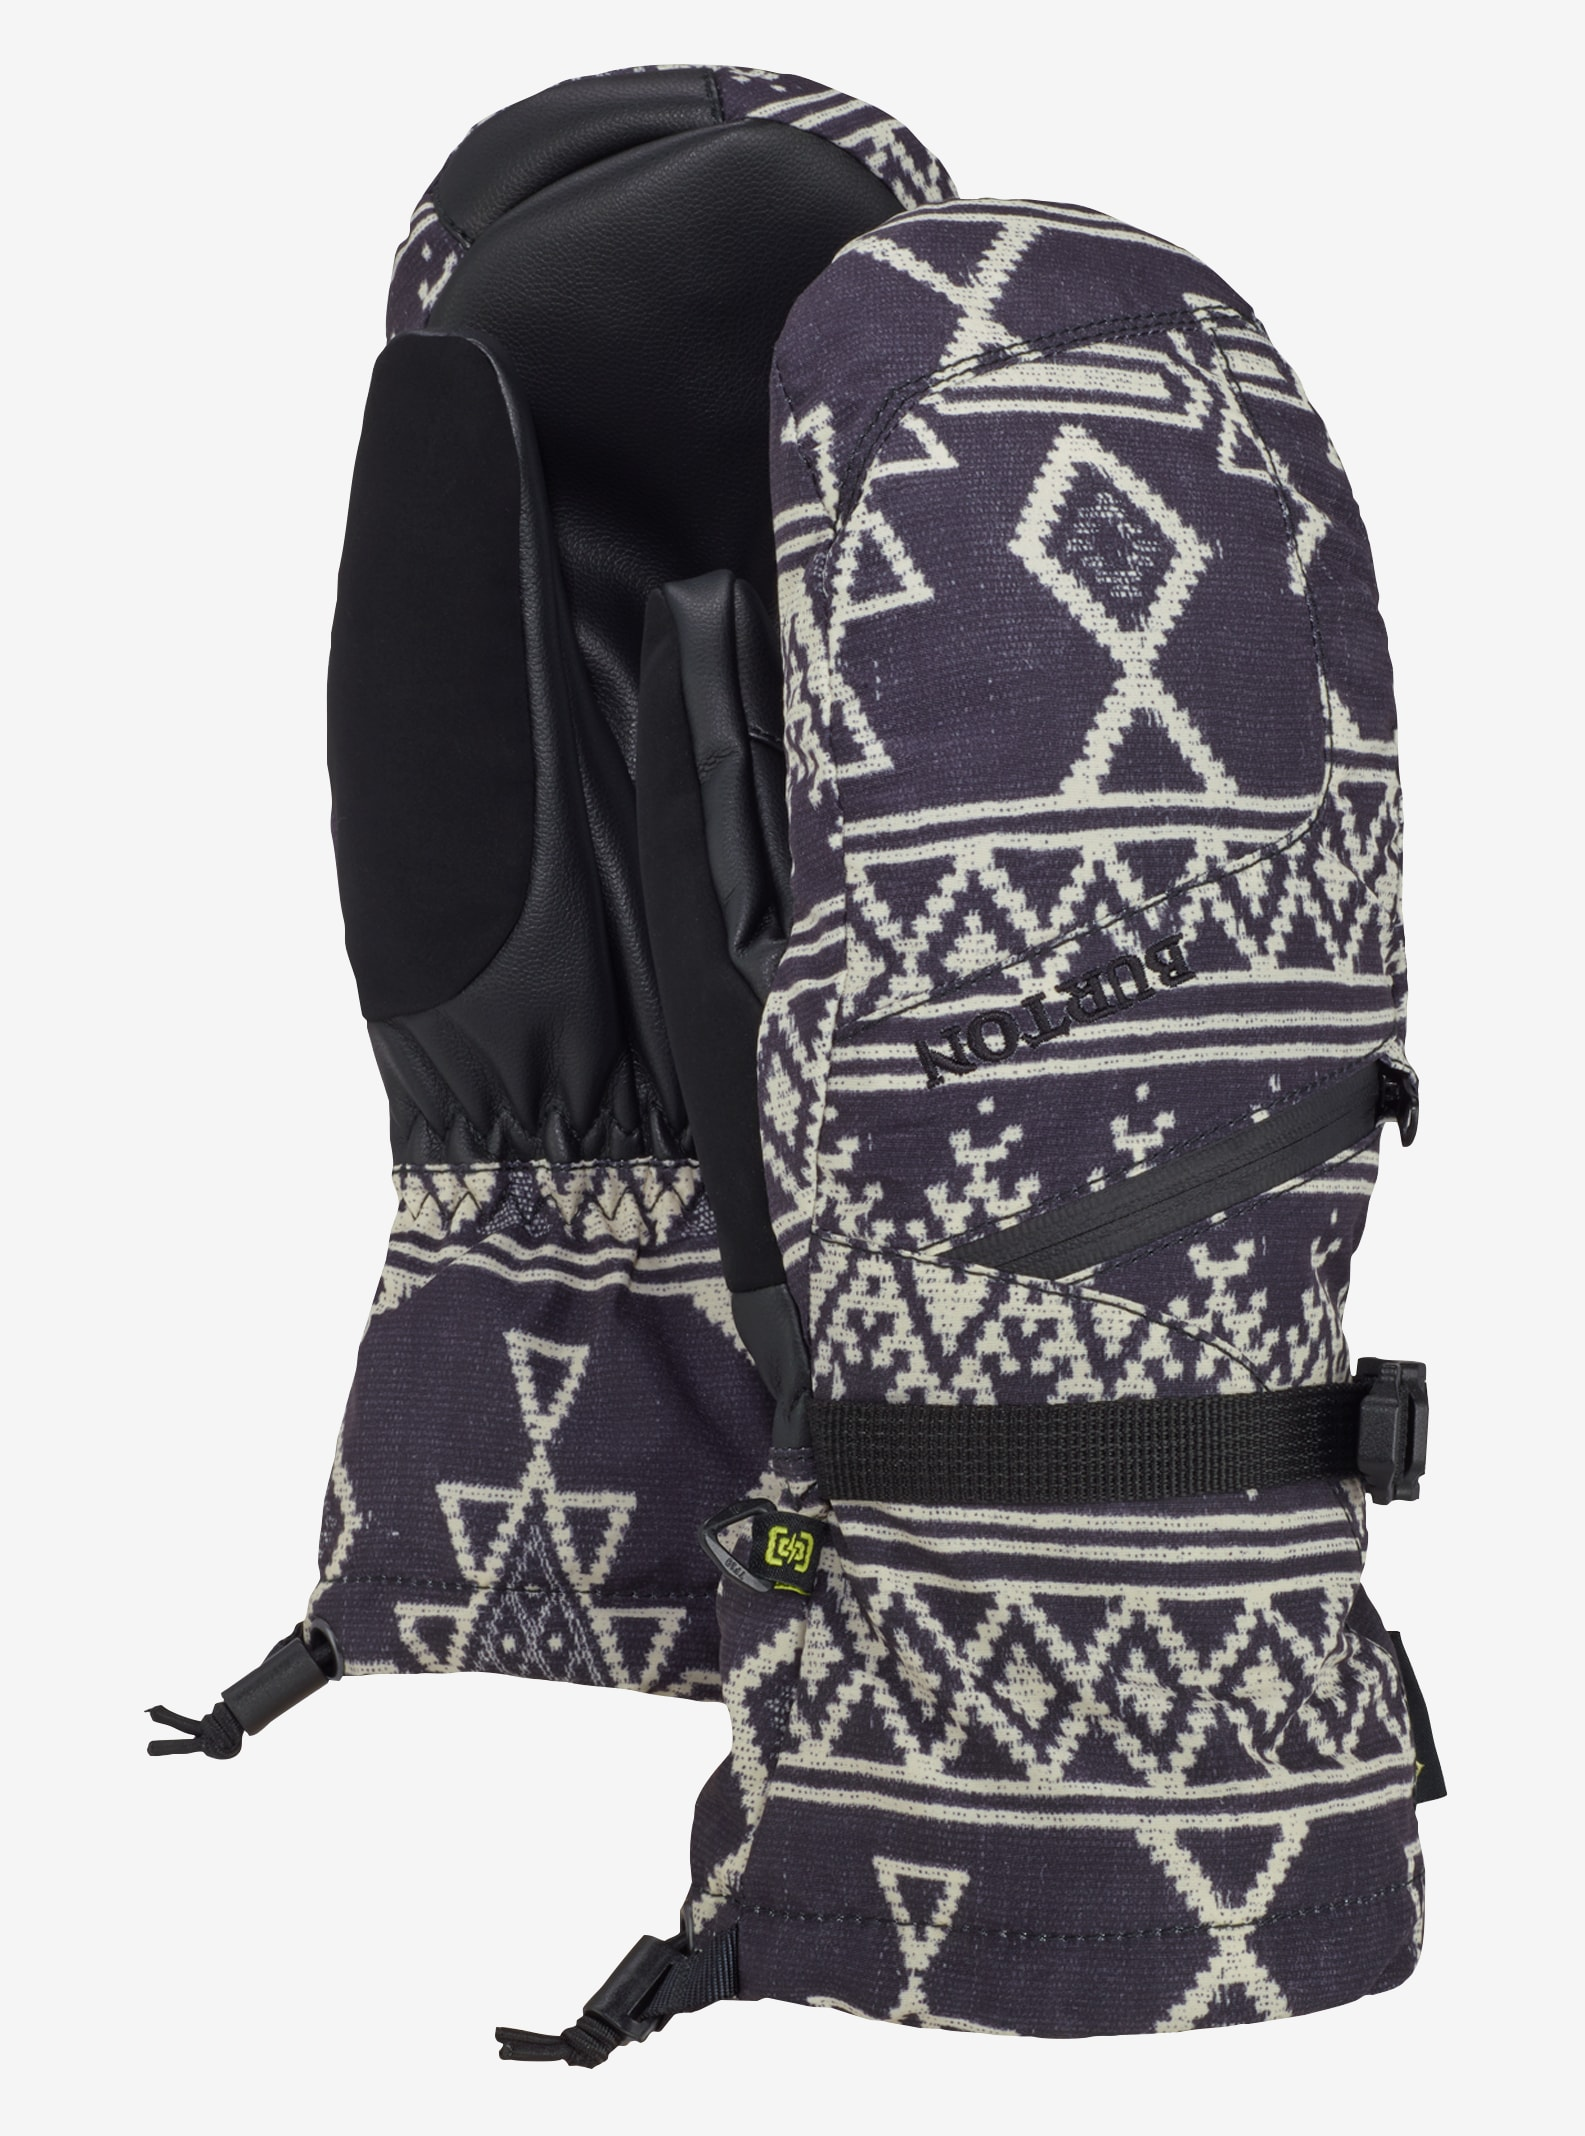 Women's Burton GORE-TEX® Mitt + Gore warm technology shown in True Black Mojave